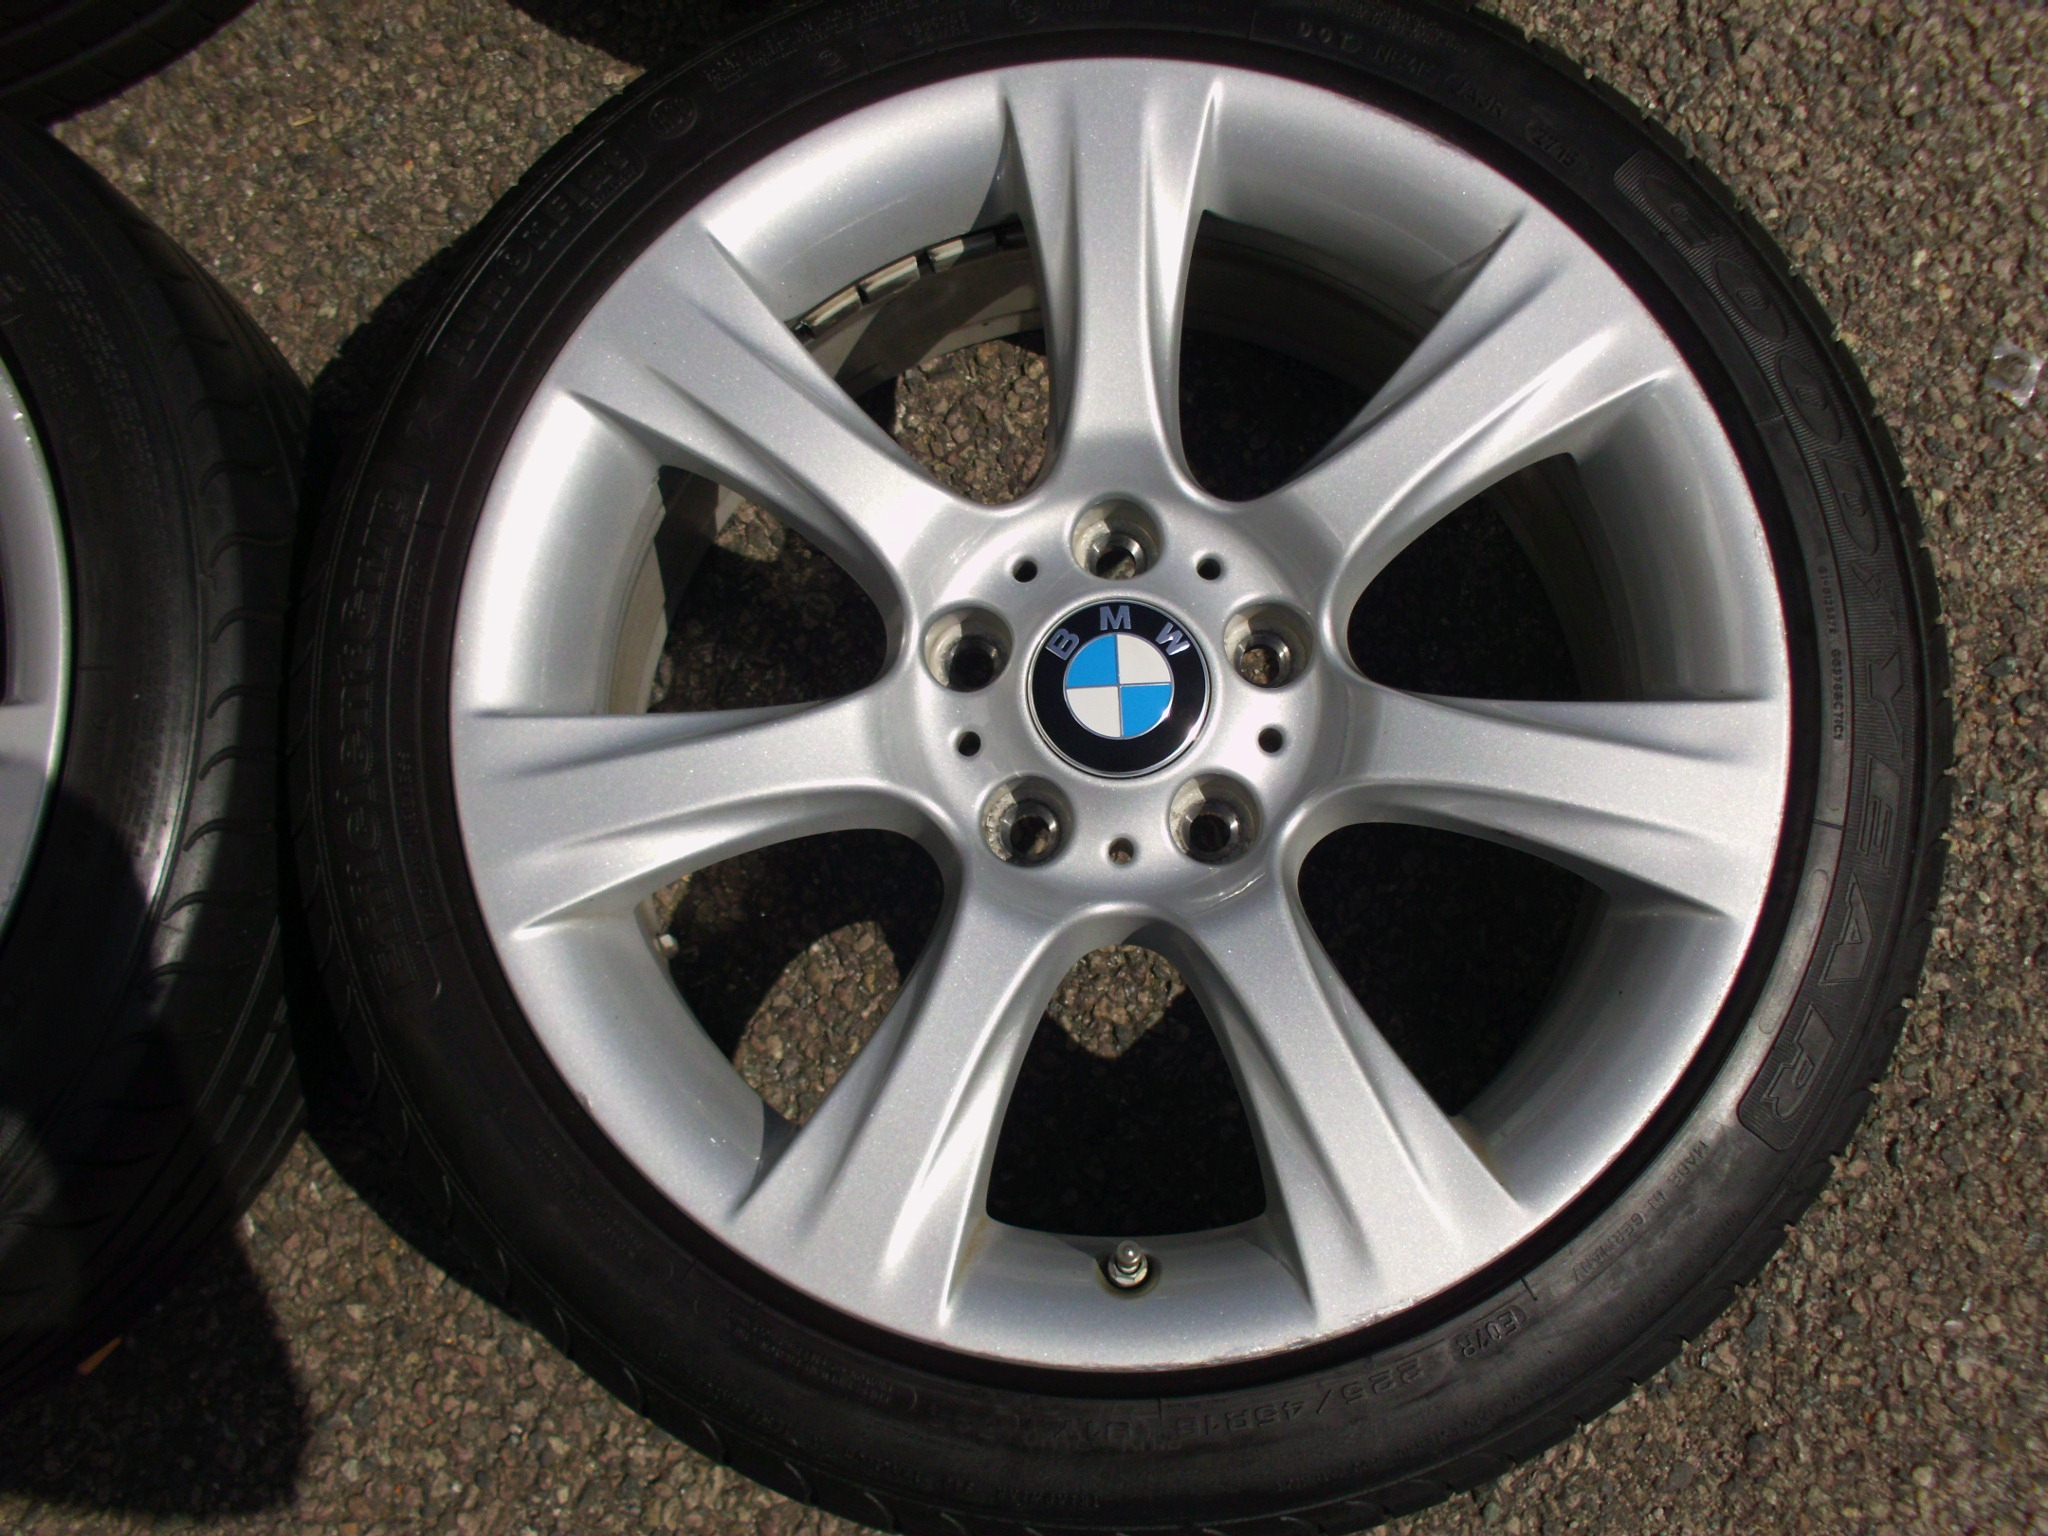 "USED 18"" GENUINE STYLE 396 7 SPOKE ALLOY WHEELS,GC INC GOODYEAR RUNFLAT TYRES AND TPMS SENSORS"